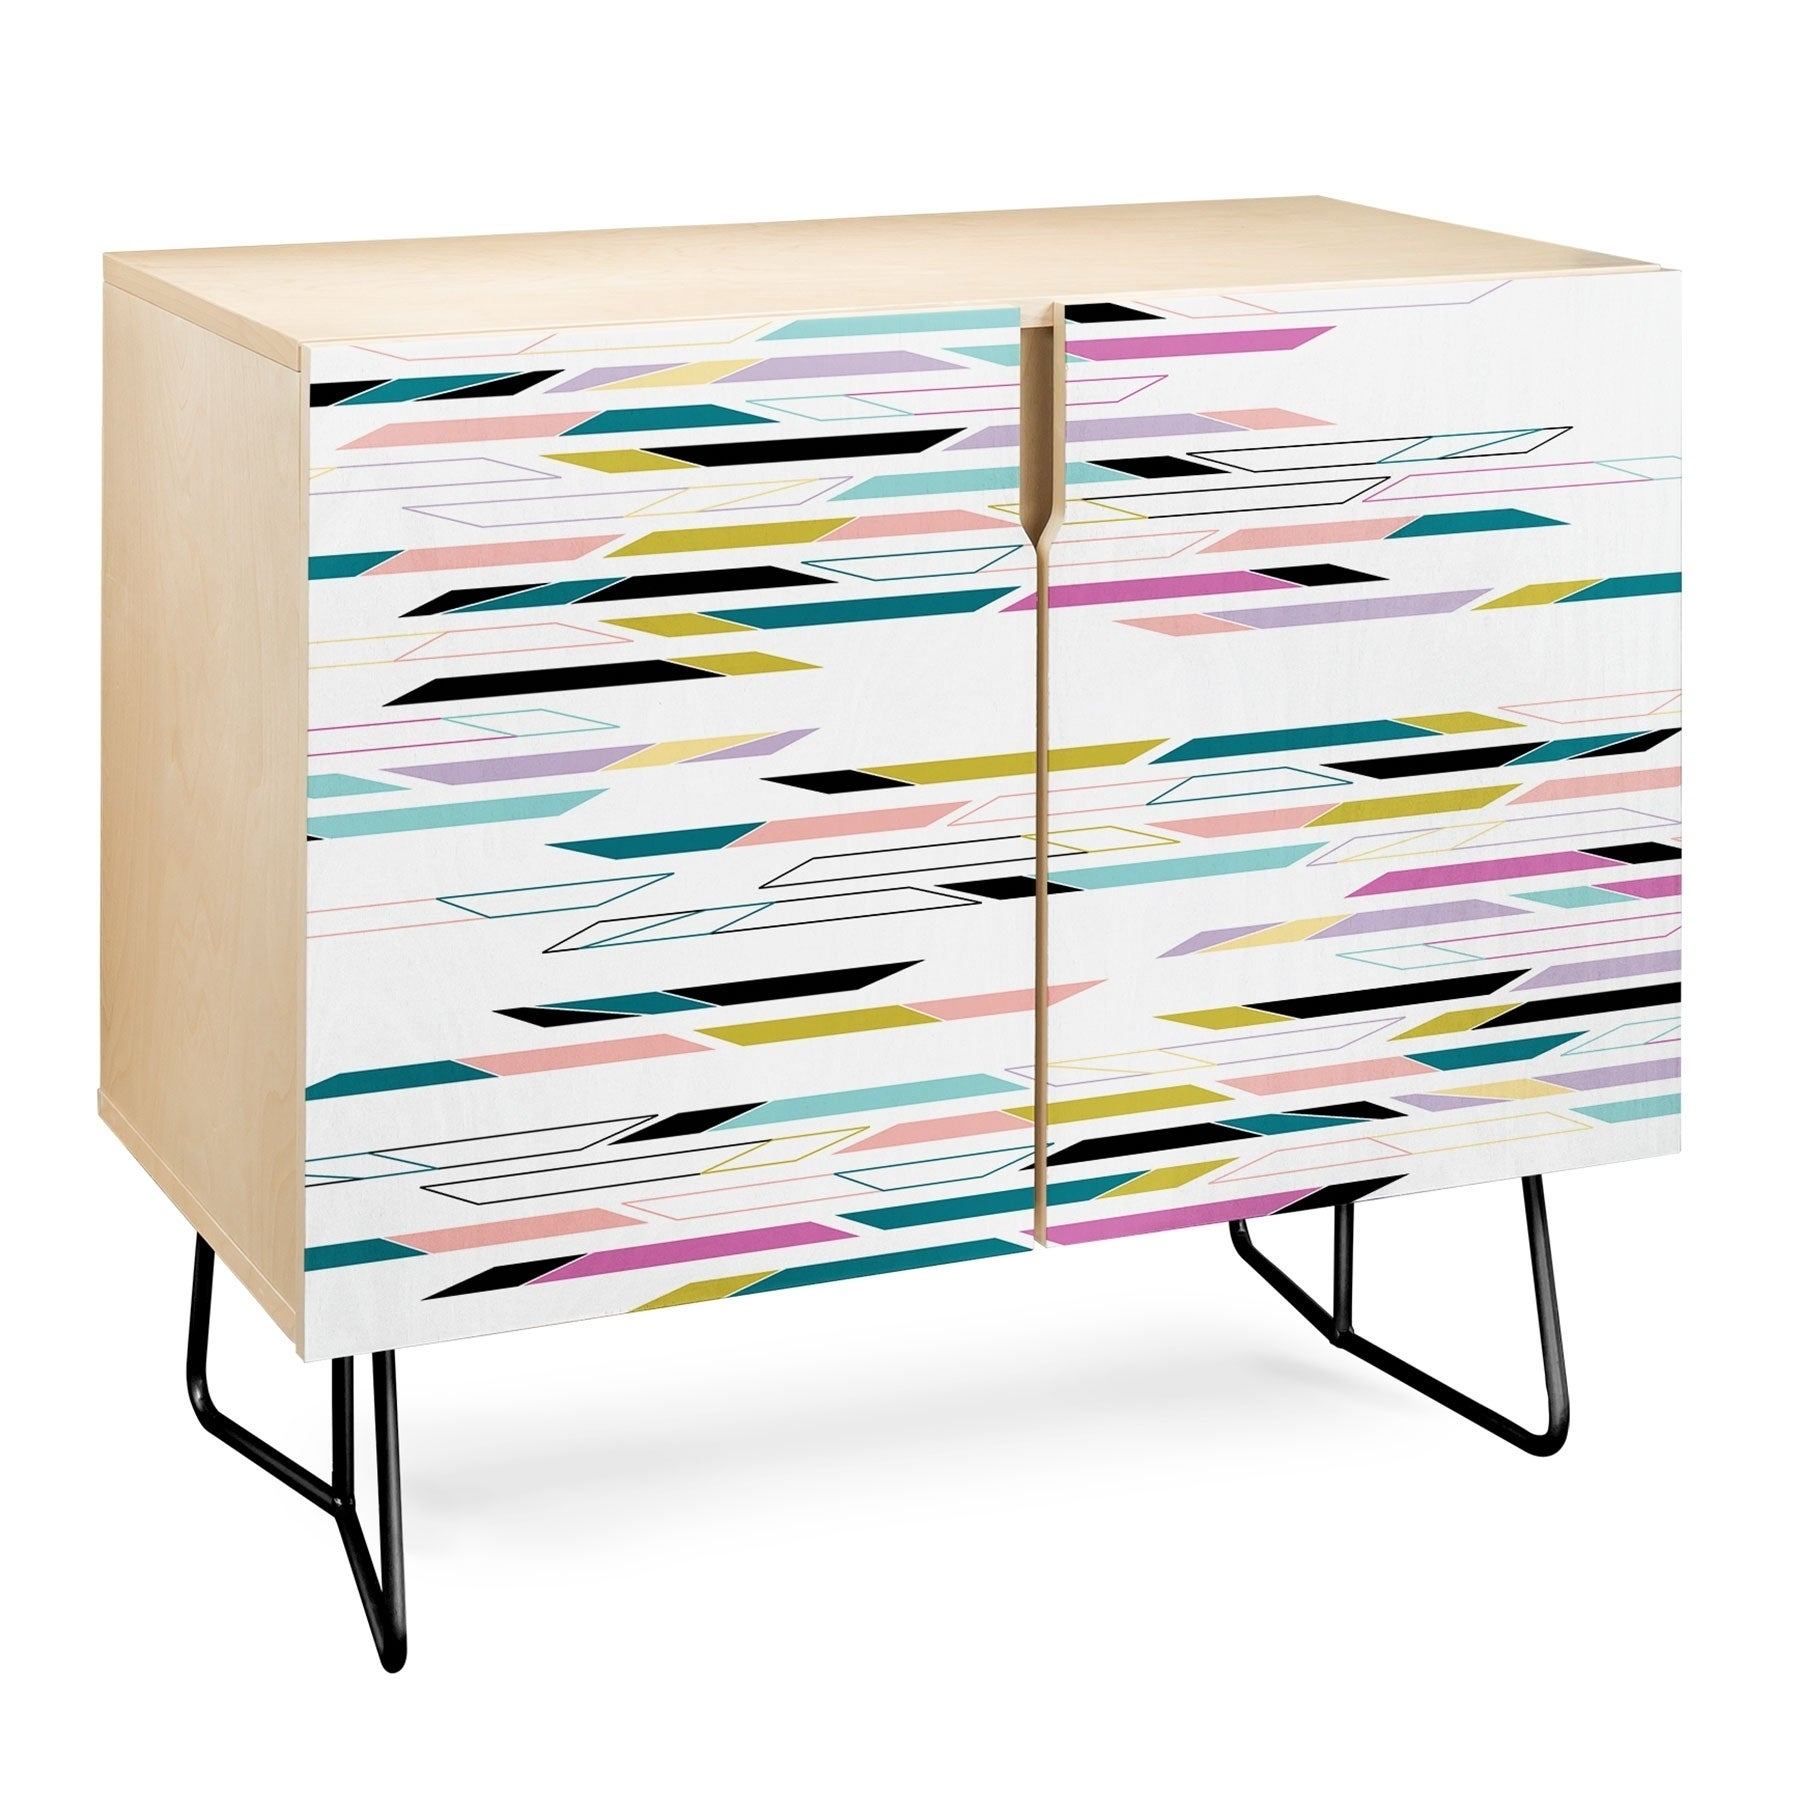 Deny Designs Multi Colored Geometric Shapes Credenza (Birch Or Walnut, 3  Leg Options) Intended For Multi Colored Geometric Shapes Credenzas (Photo 3 of 30)